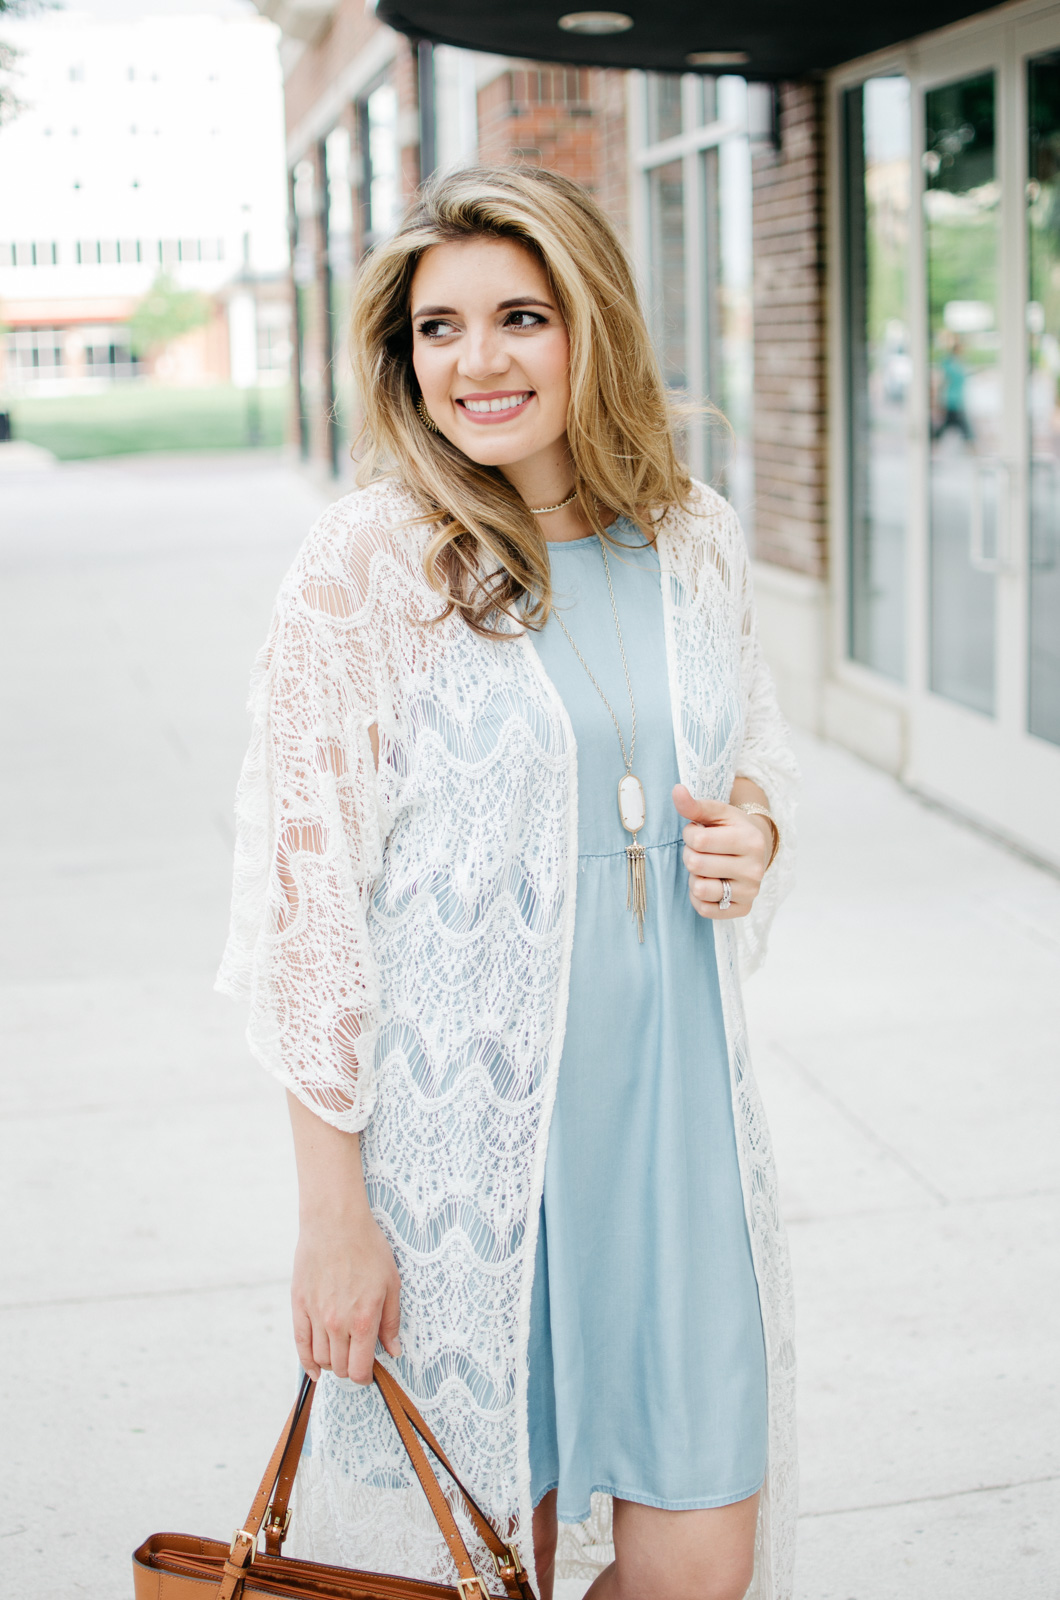 long lace kimono with chambray dress - spring boho outfit | For more cute Spring outfits, head to bylaurenm.com